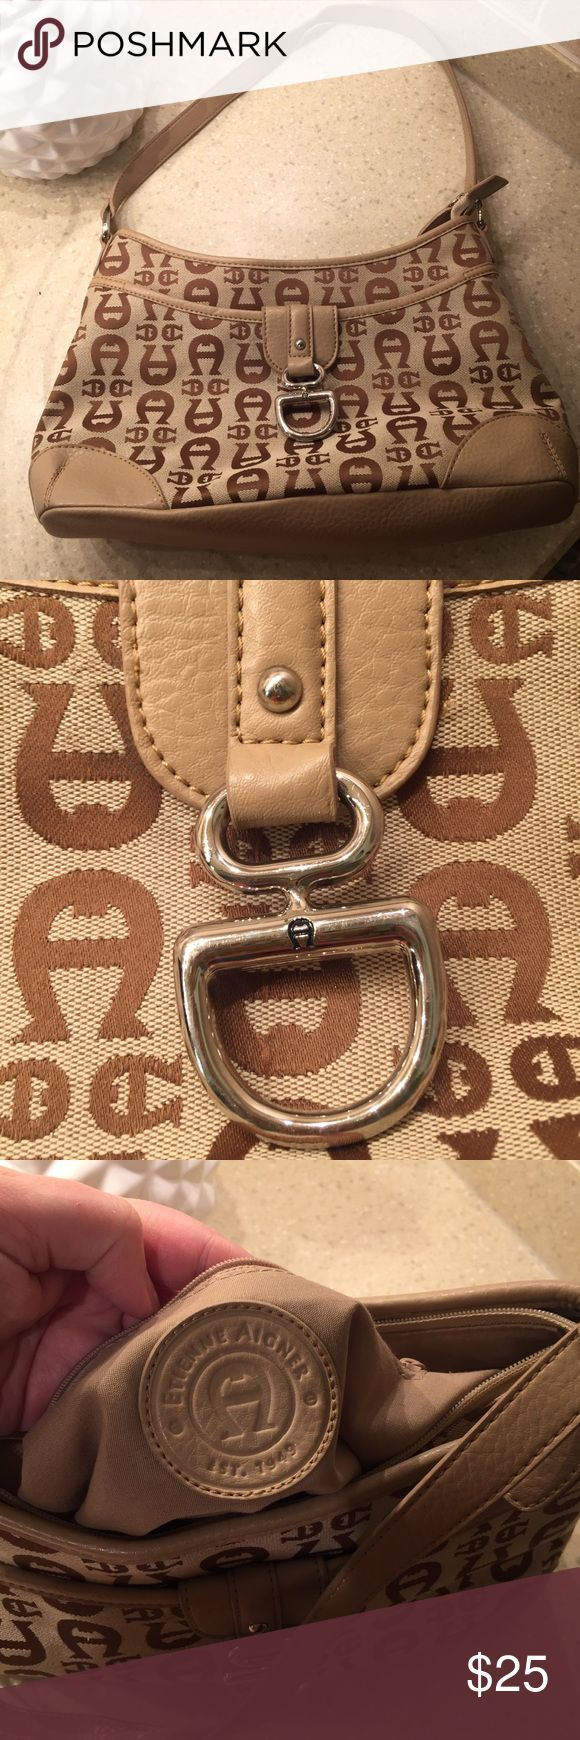 Classic Etienne Aigner Handbag Classic signature logo printed tan Etienne Aigner handbag. In excellent like-new pre-loved condition! 💕 Etienne Aigner Bags